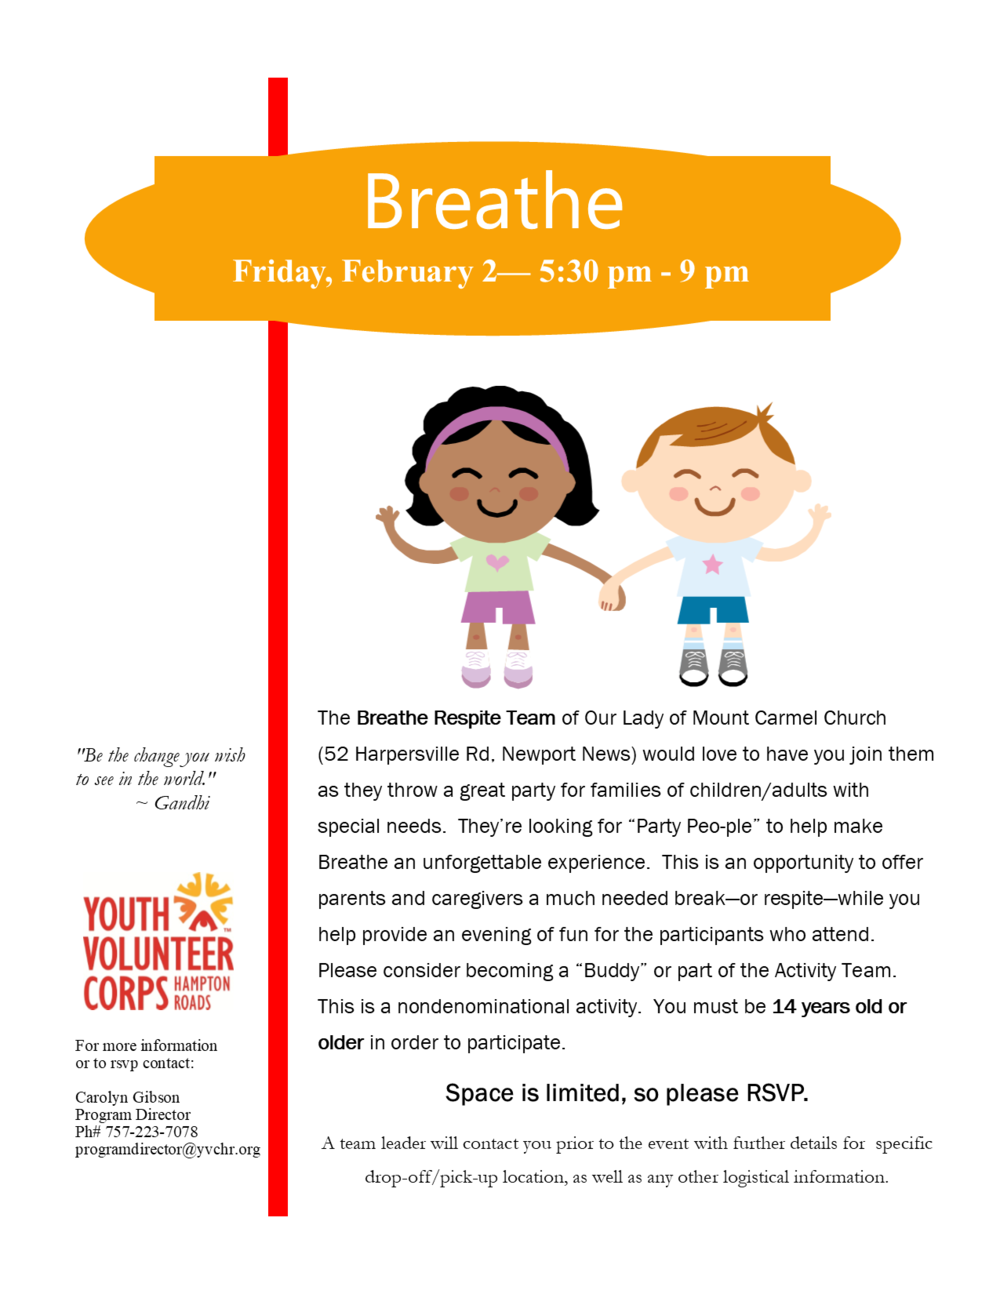 Breathe flier - Feb. 2.png